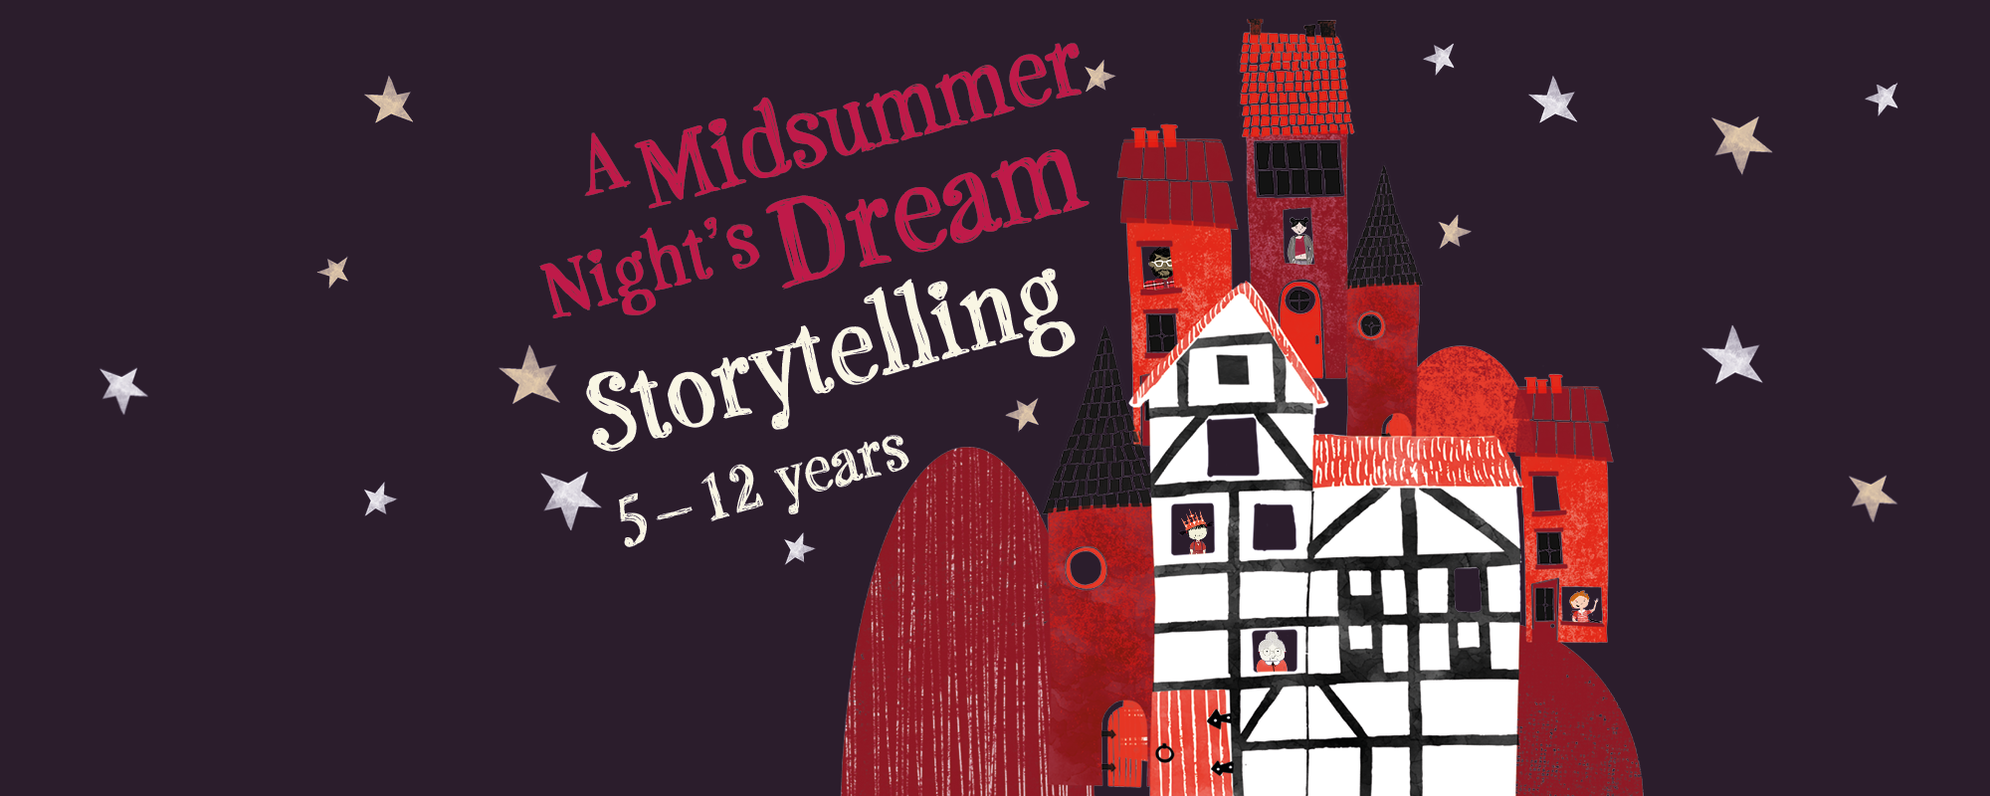 Title 'A Midsummer Night's Dream Storytelling 5-12 years' alongside cartoon houses, figures and stars